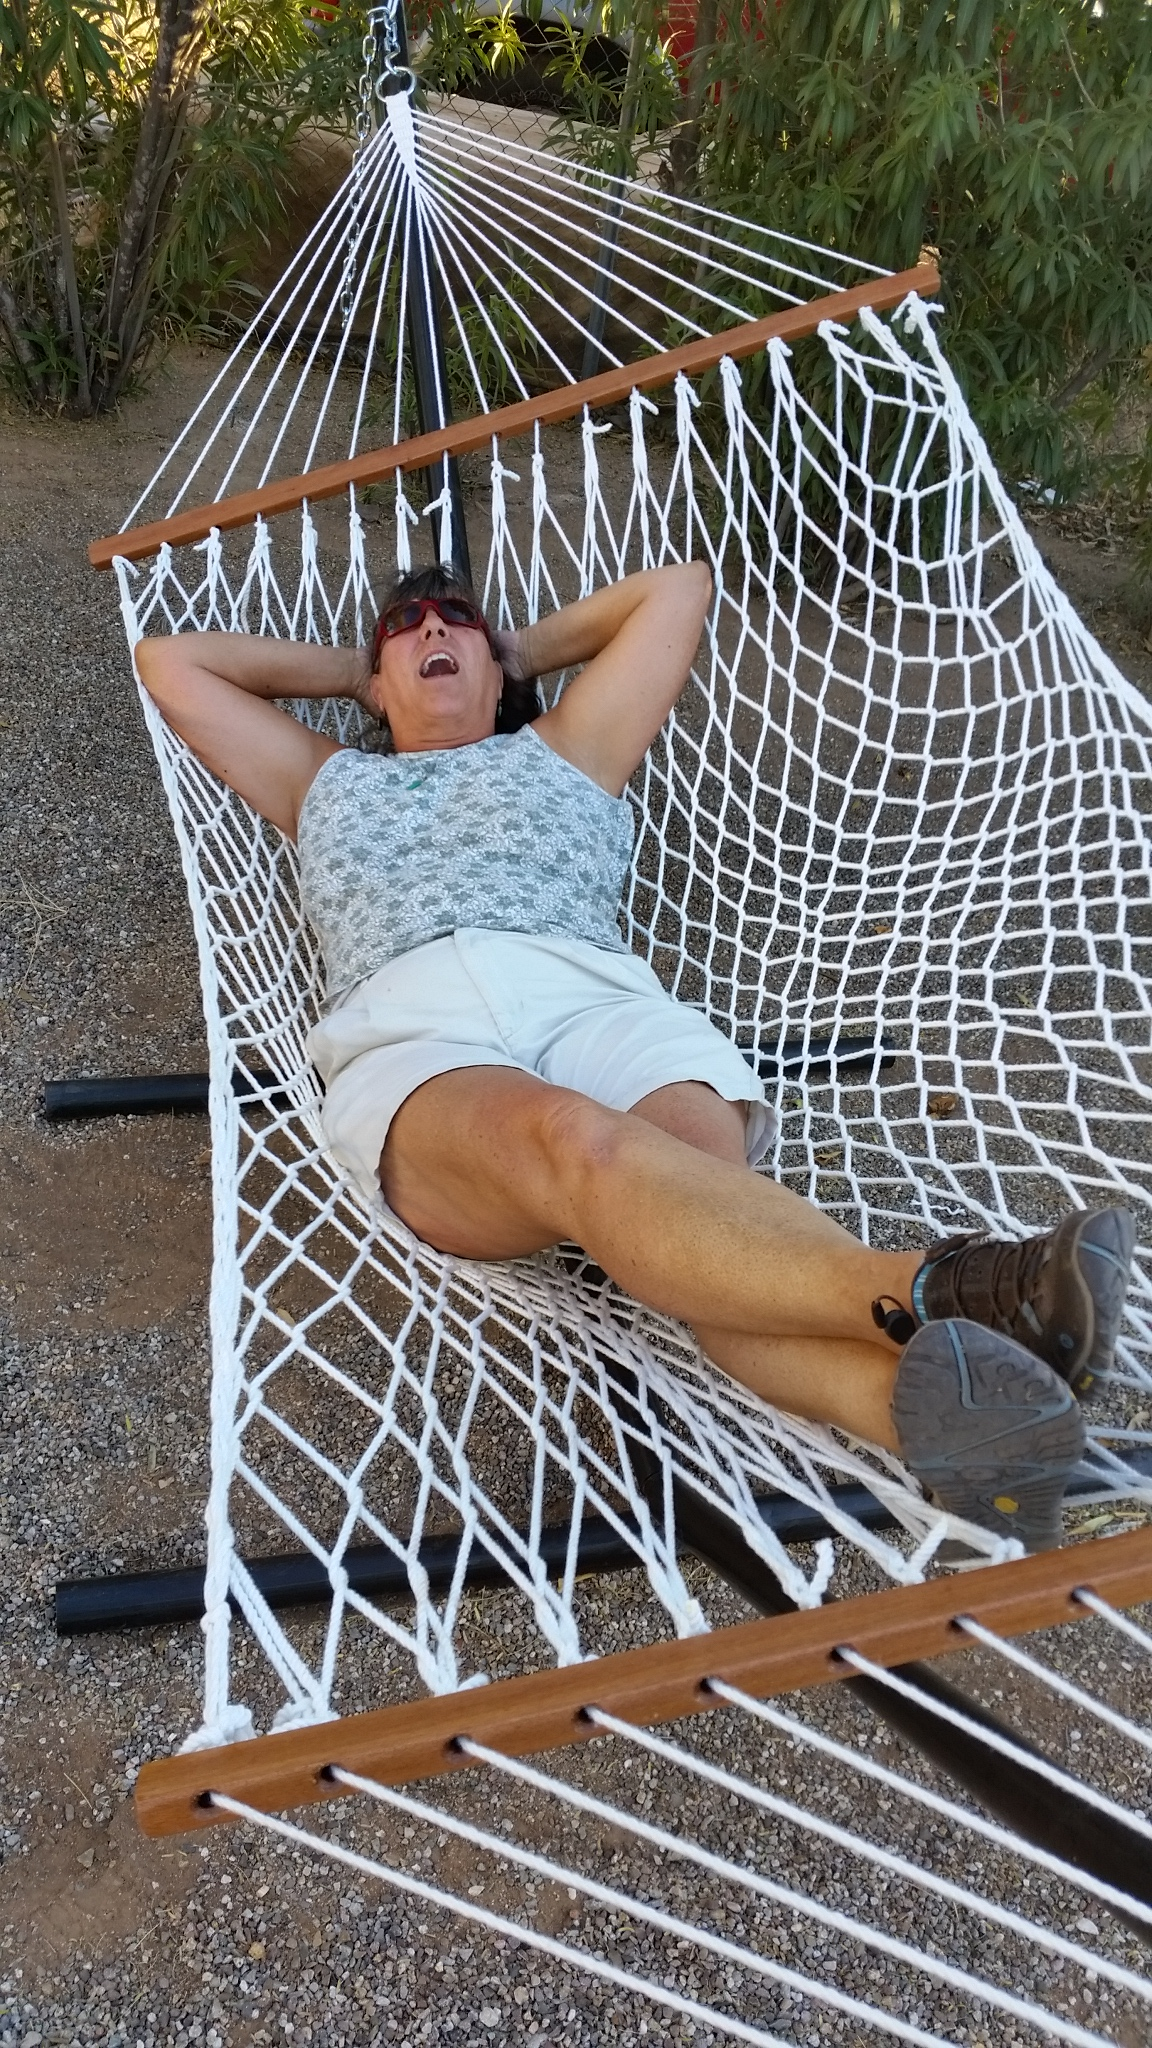 2018-02-07 Sherry in Hammock